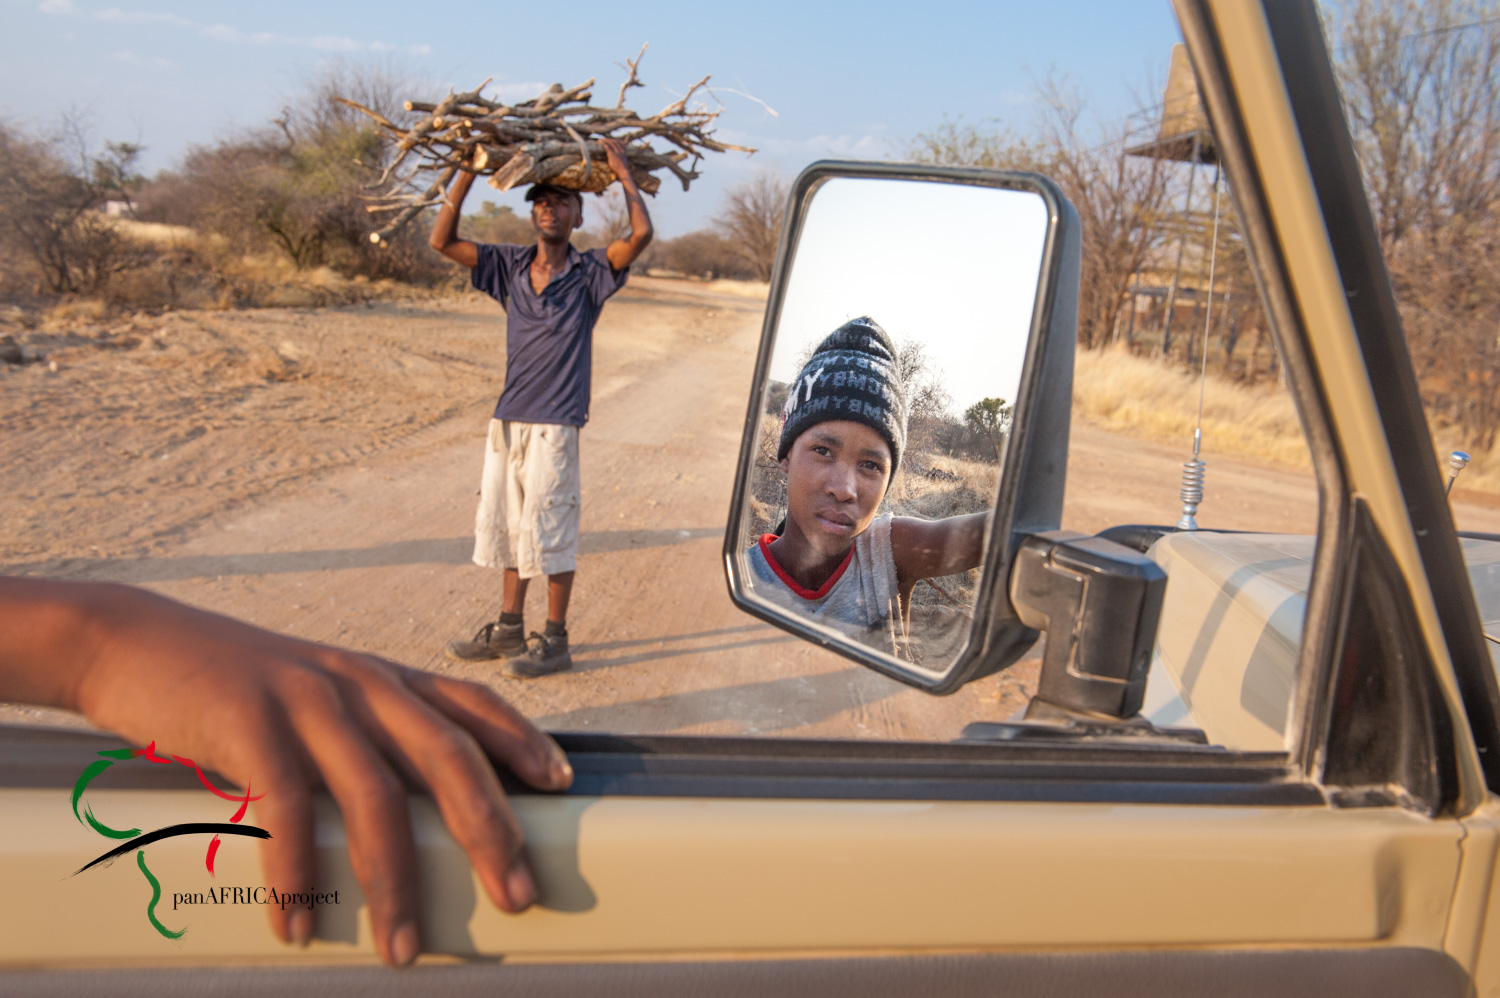 Man carrying firewood while child looks in mirror